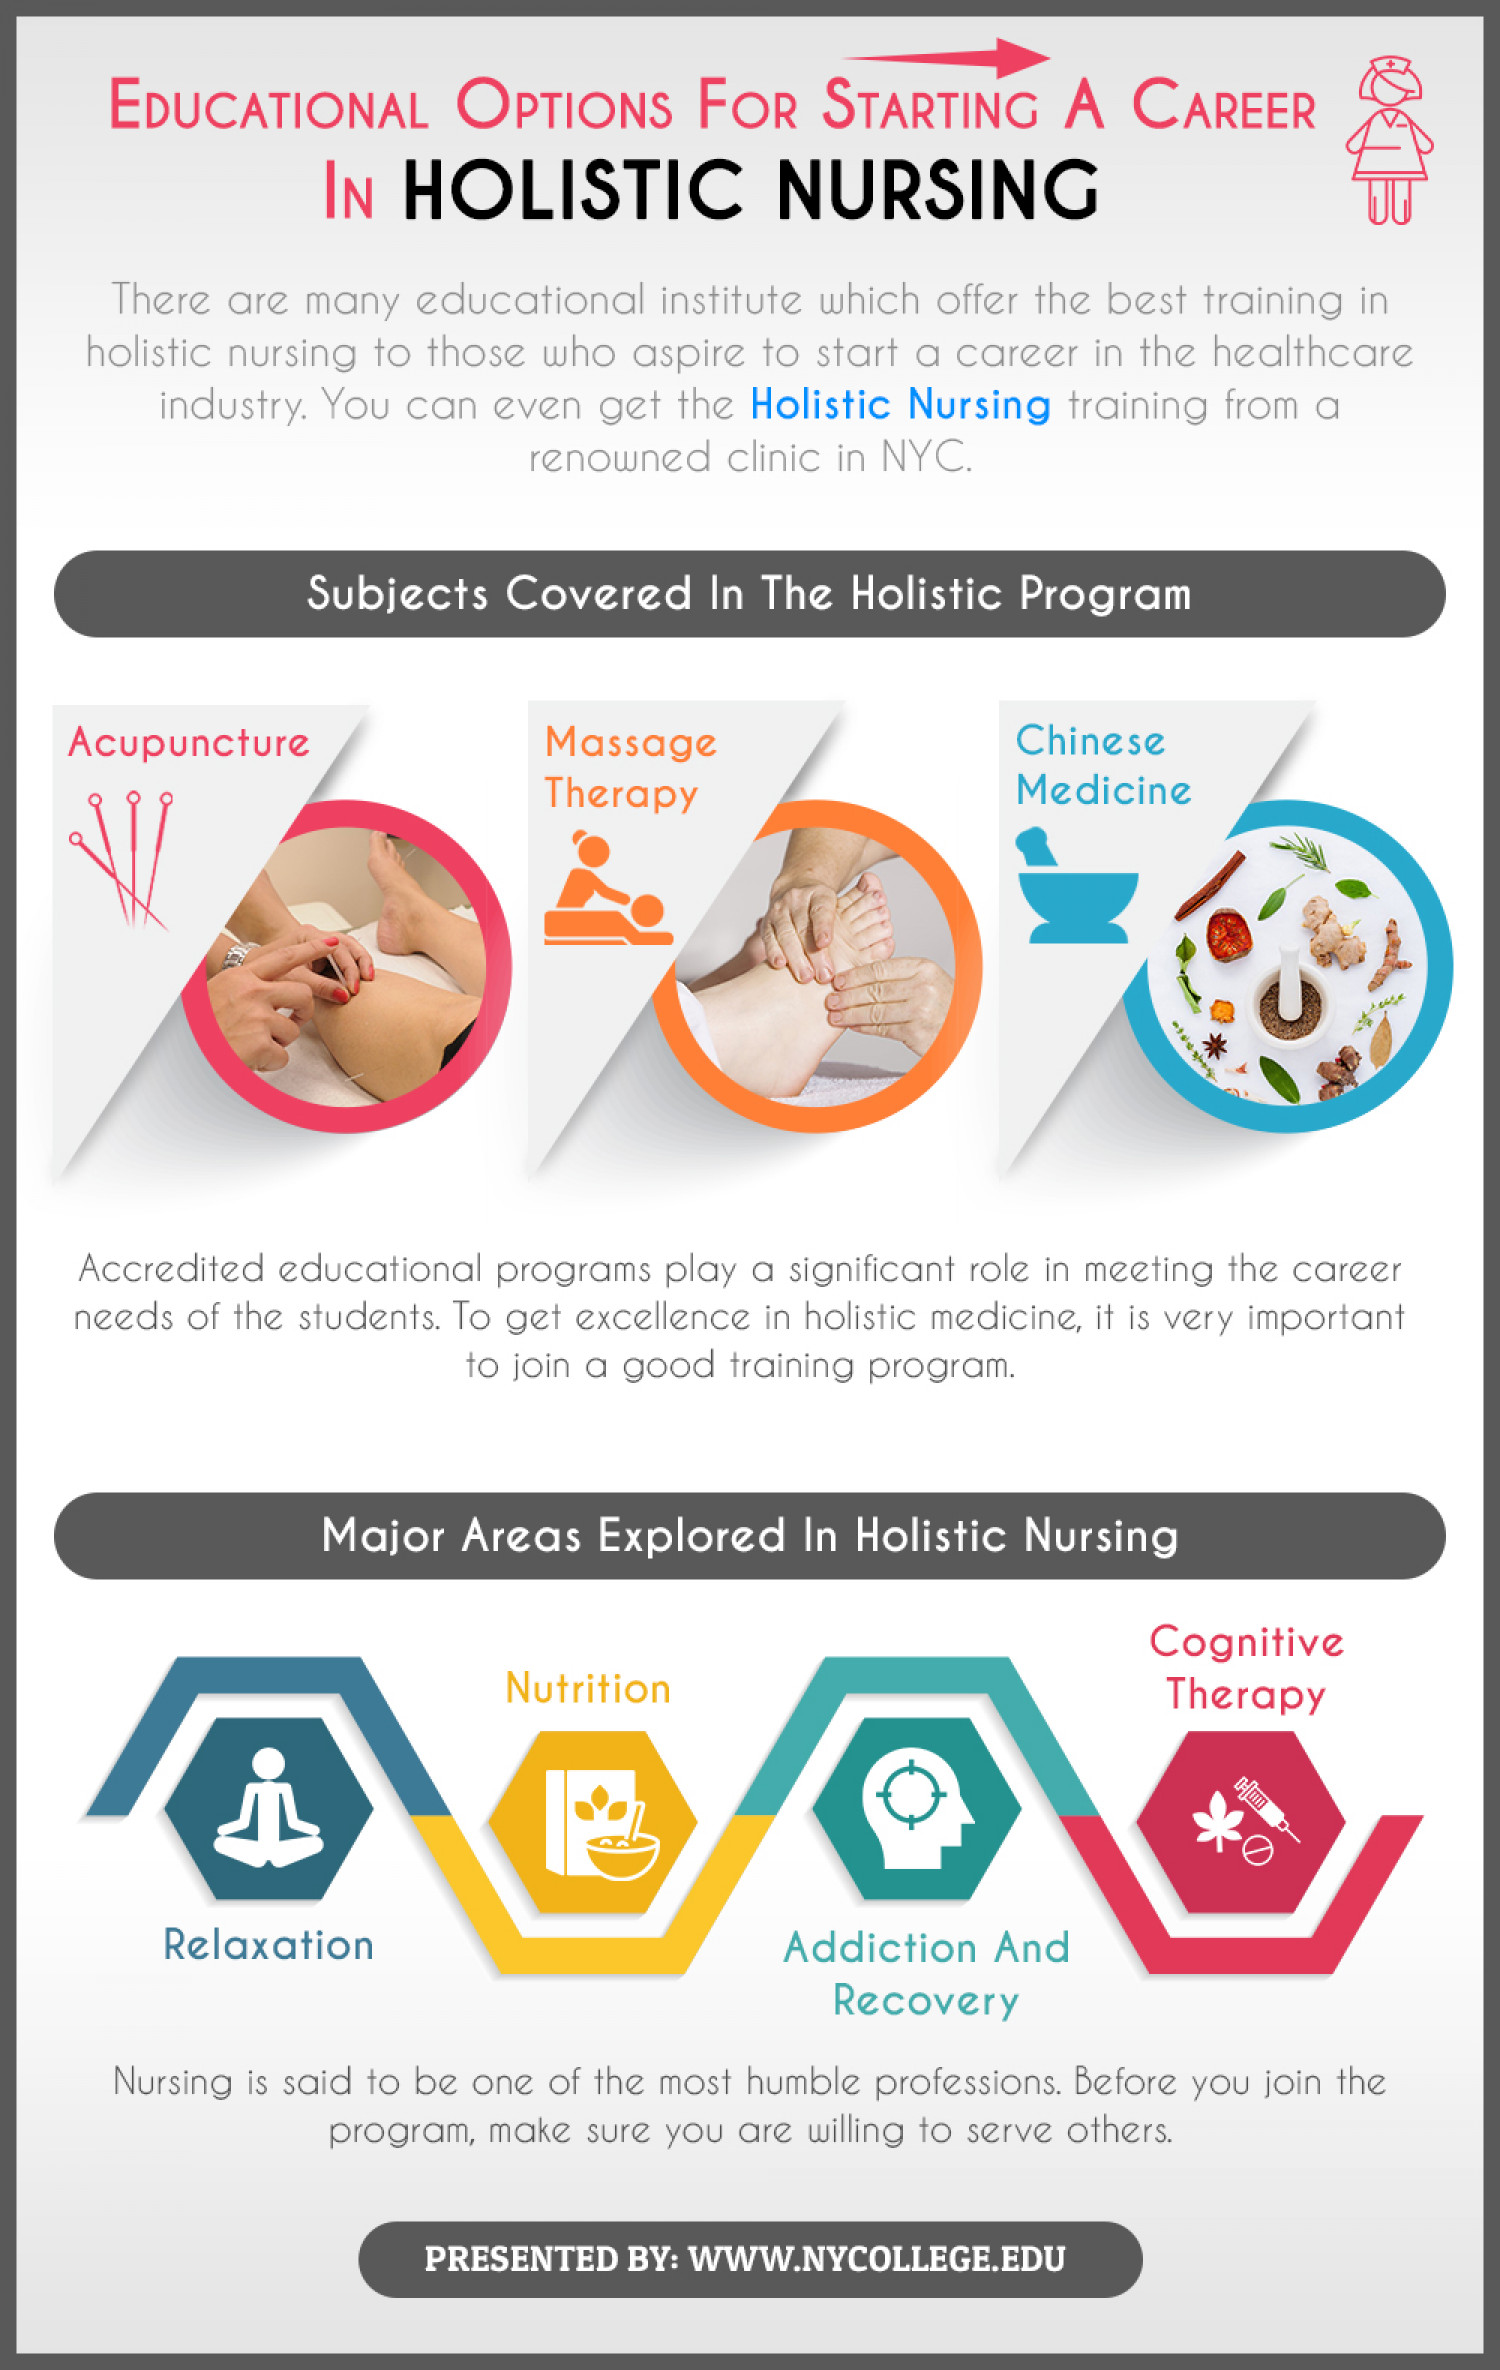 Educational Options For Starting A Career In Holistic Nursing Infographic